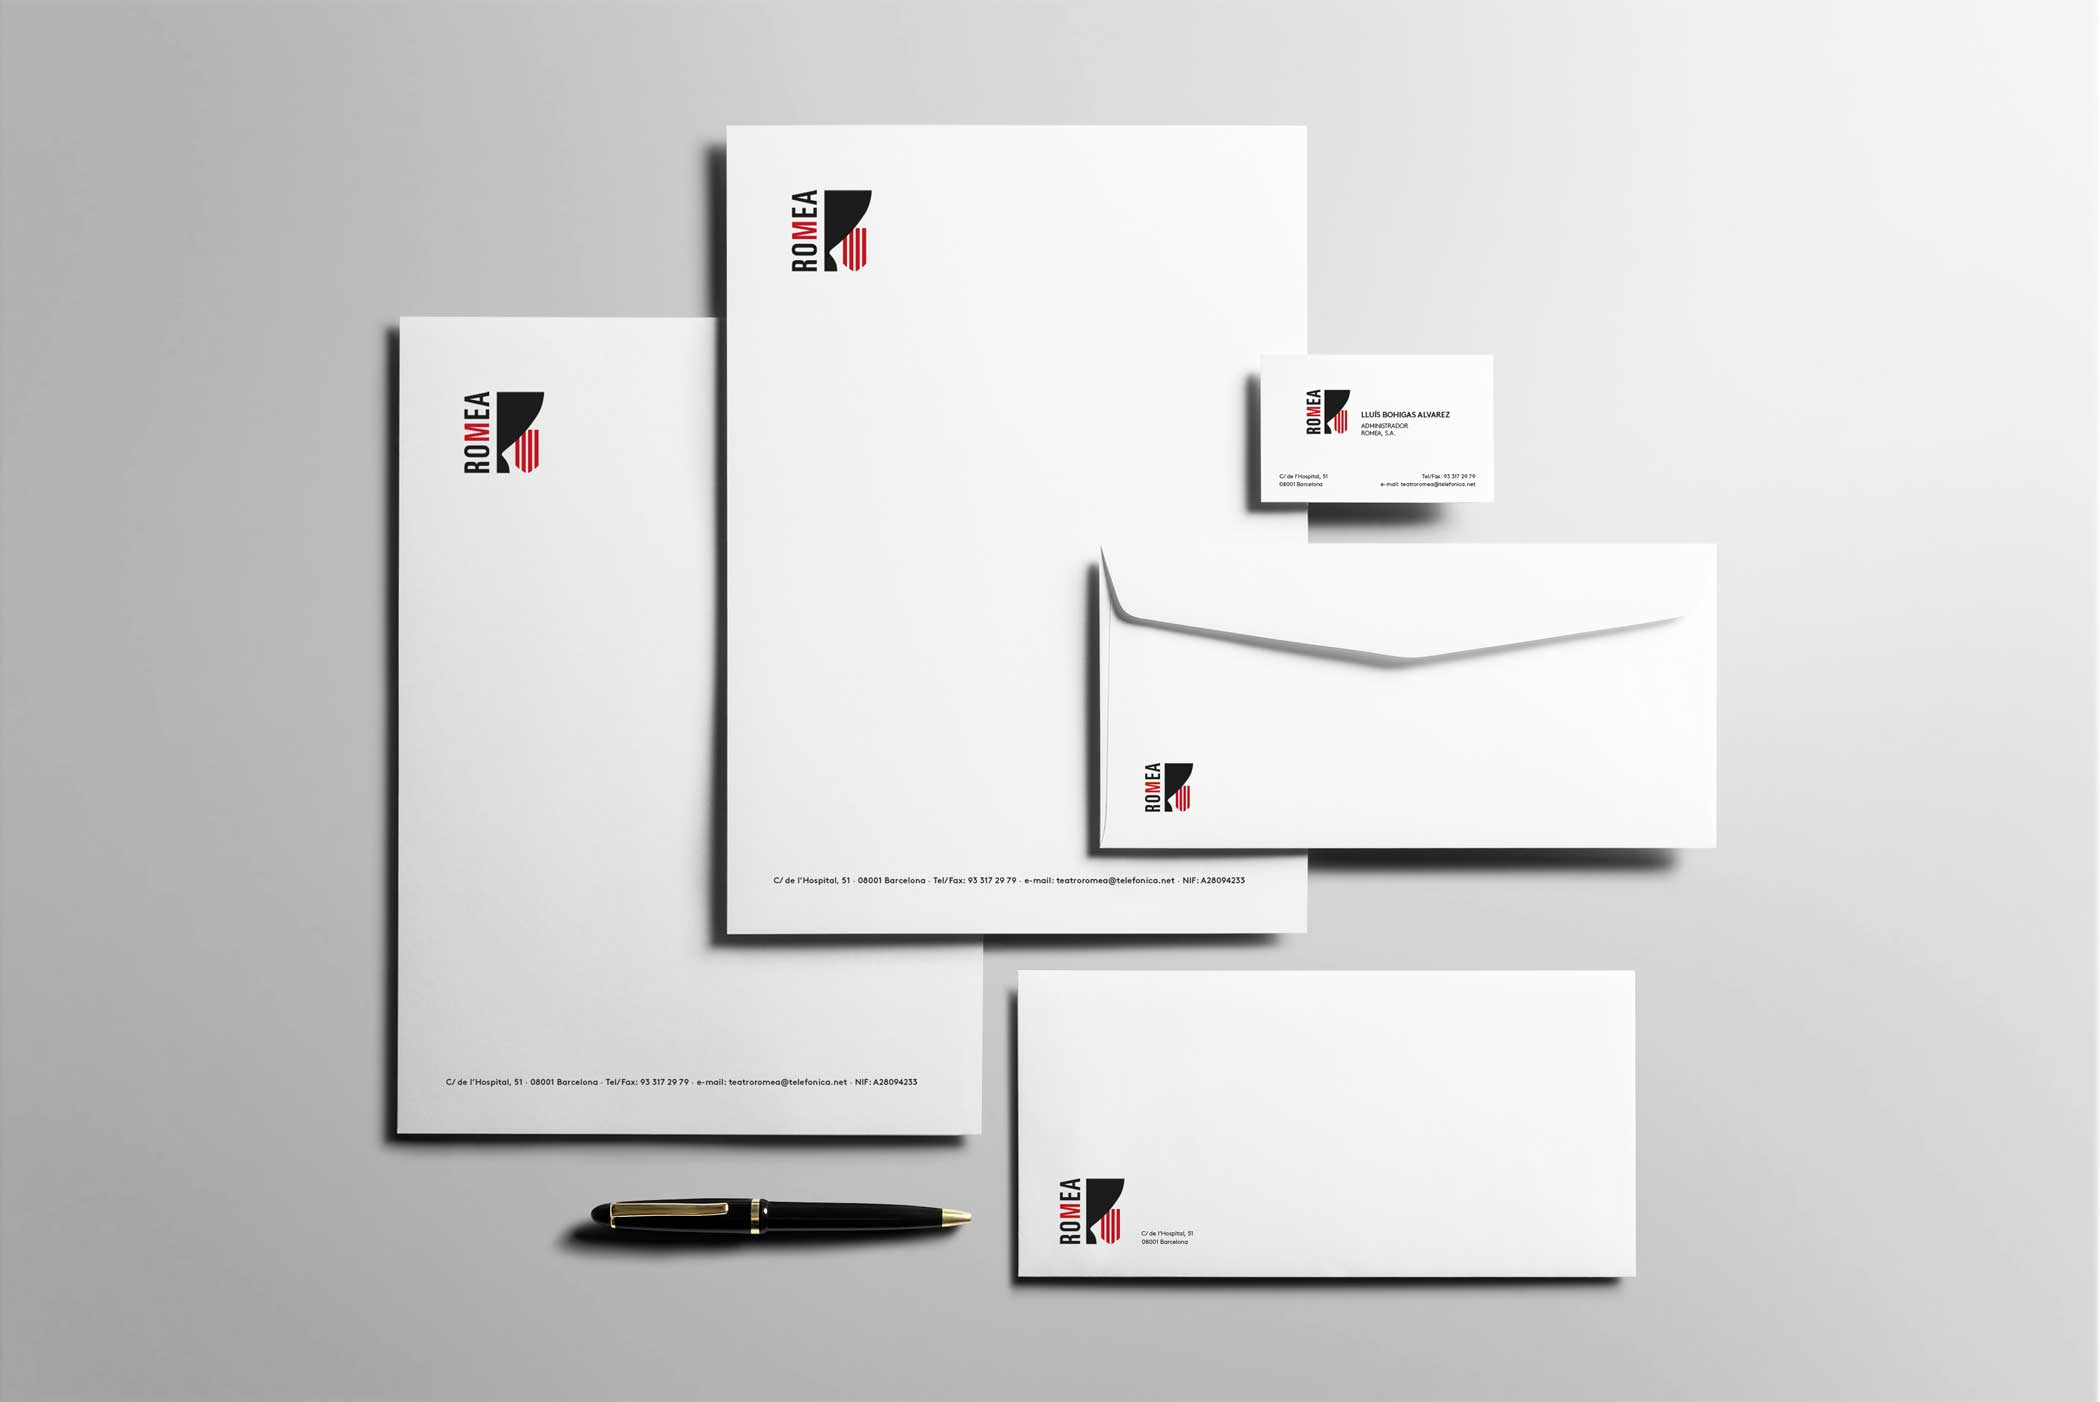 Branding and design creative agency